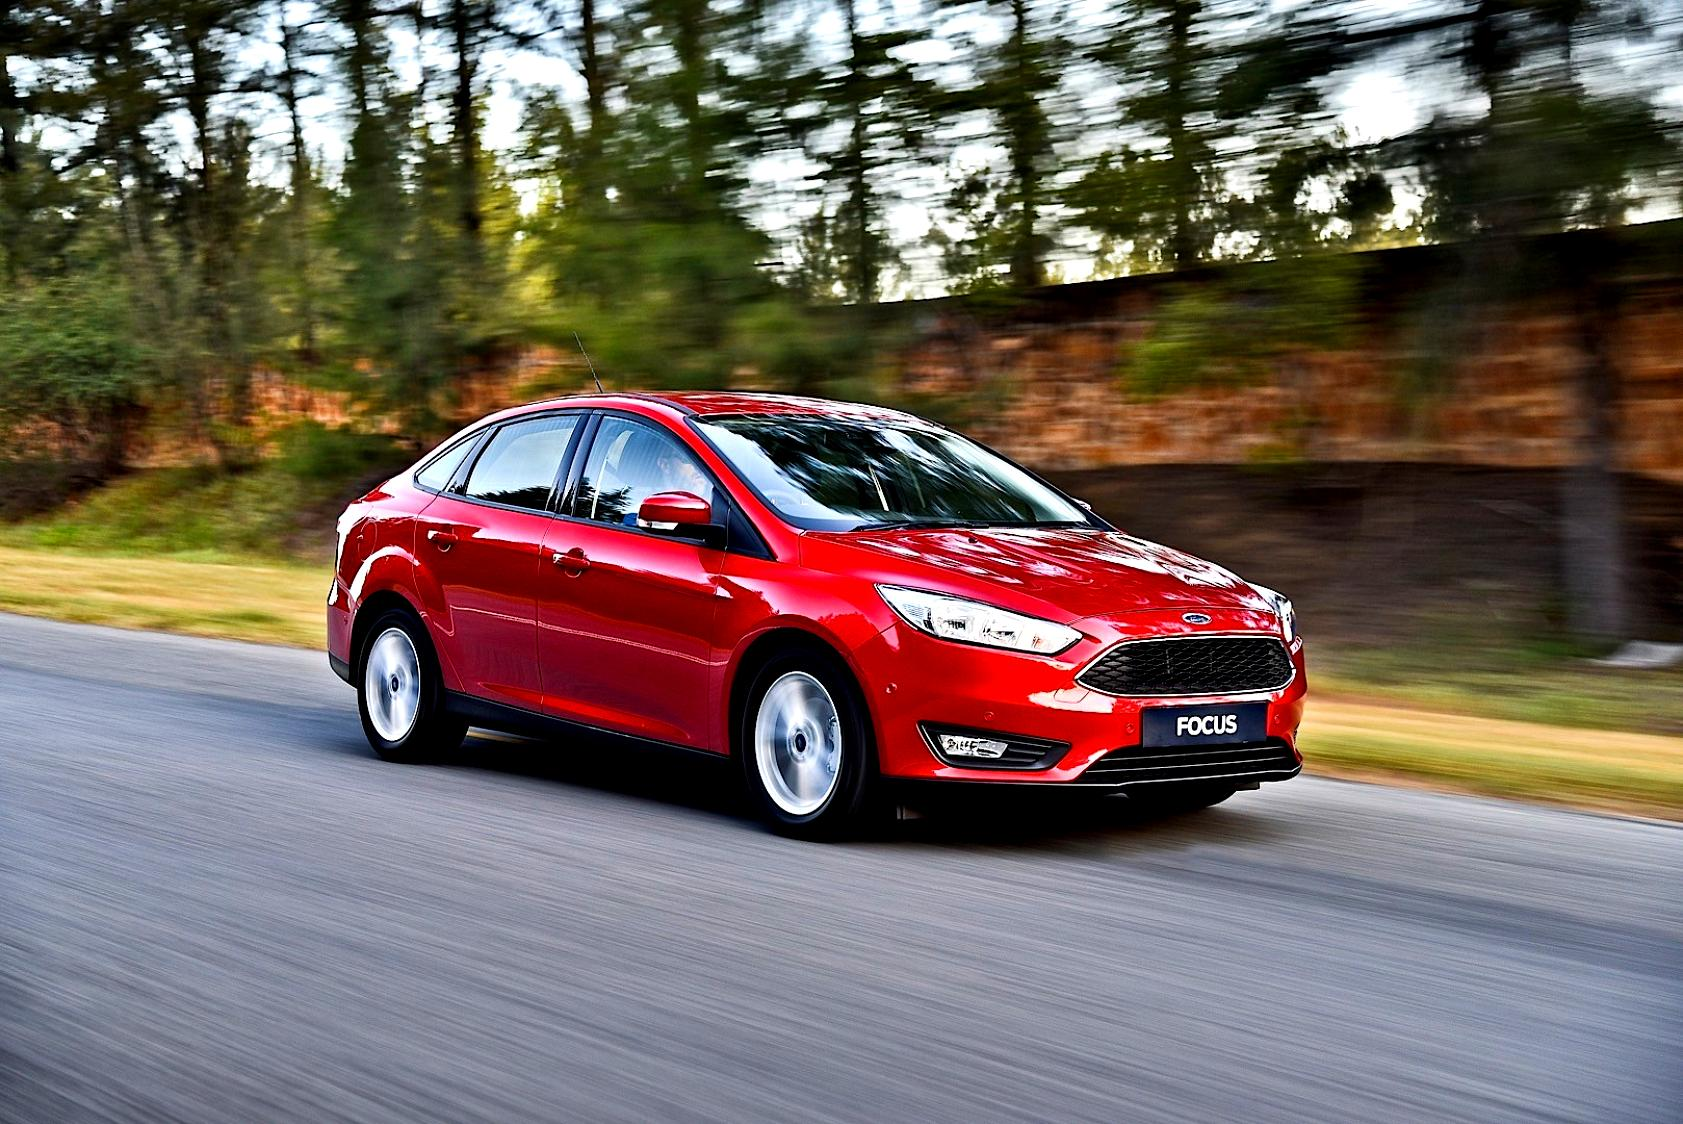 Ford Focus Sedan 2014 #50